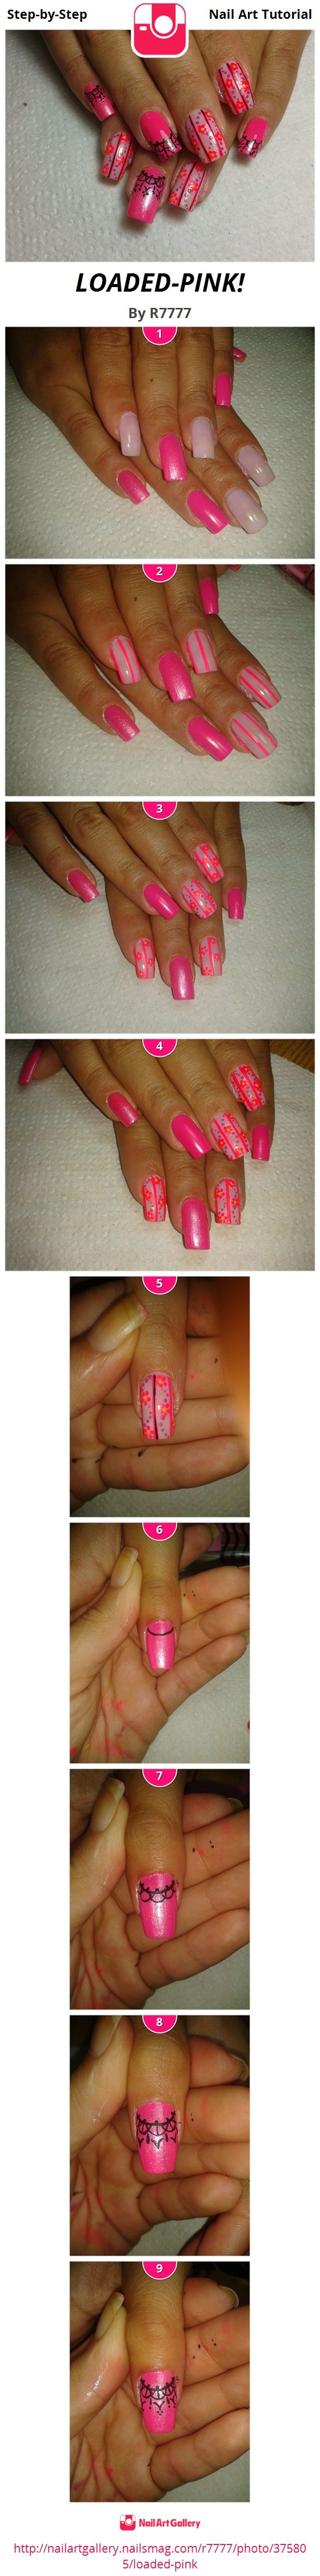 LOADED-PINK! by R7777 from Nail Art Gallery